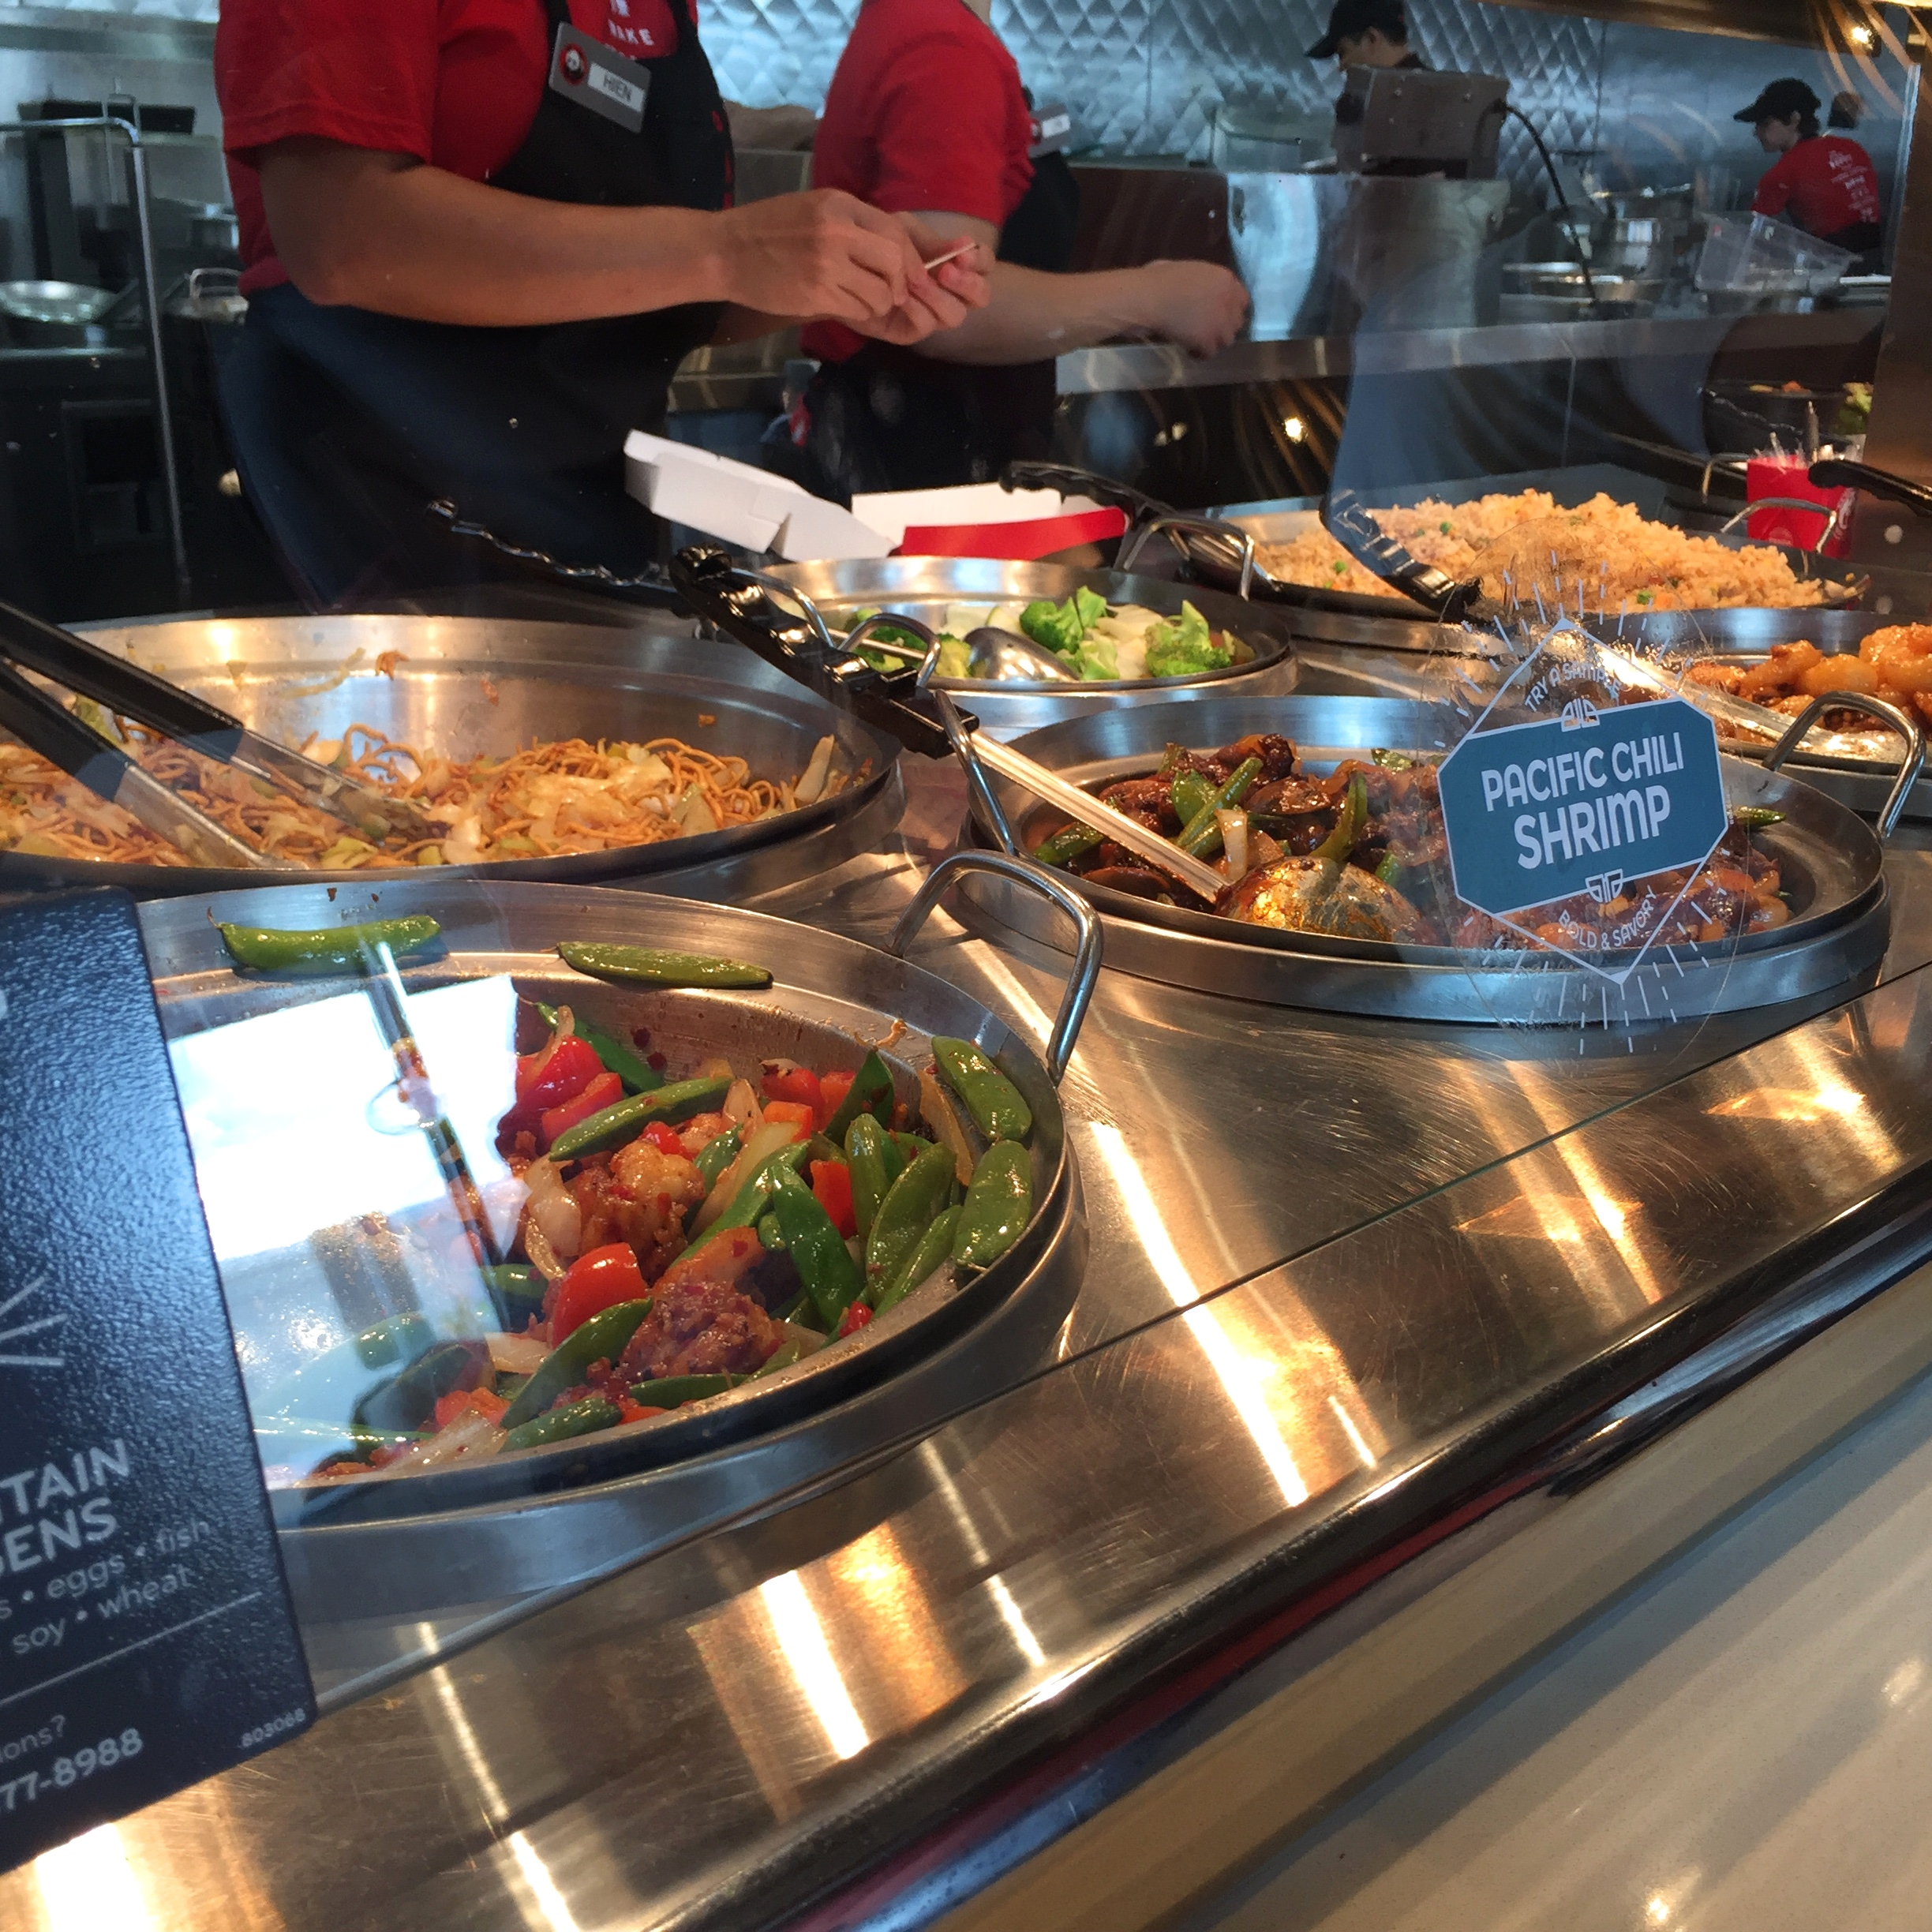 Panda Express is arguably a fast food restaurant because it follows the food preparation model of nearly all other defined fast food restaurants: the food is prepared and held at temperature until purchase. It may be confusing because Panda Expres.